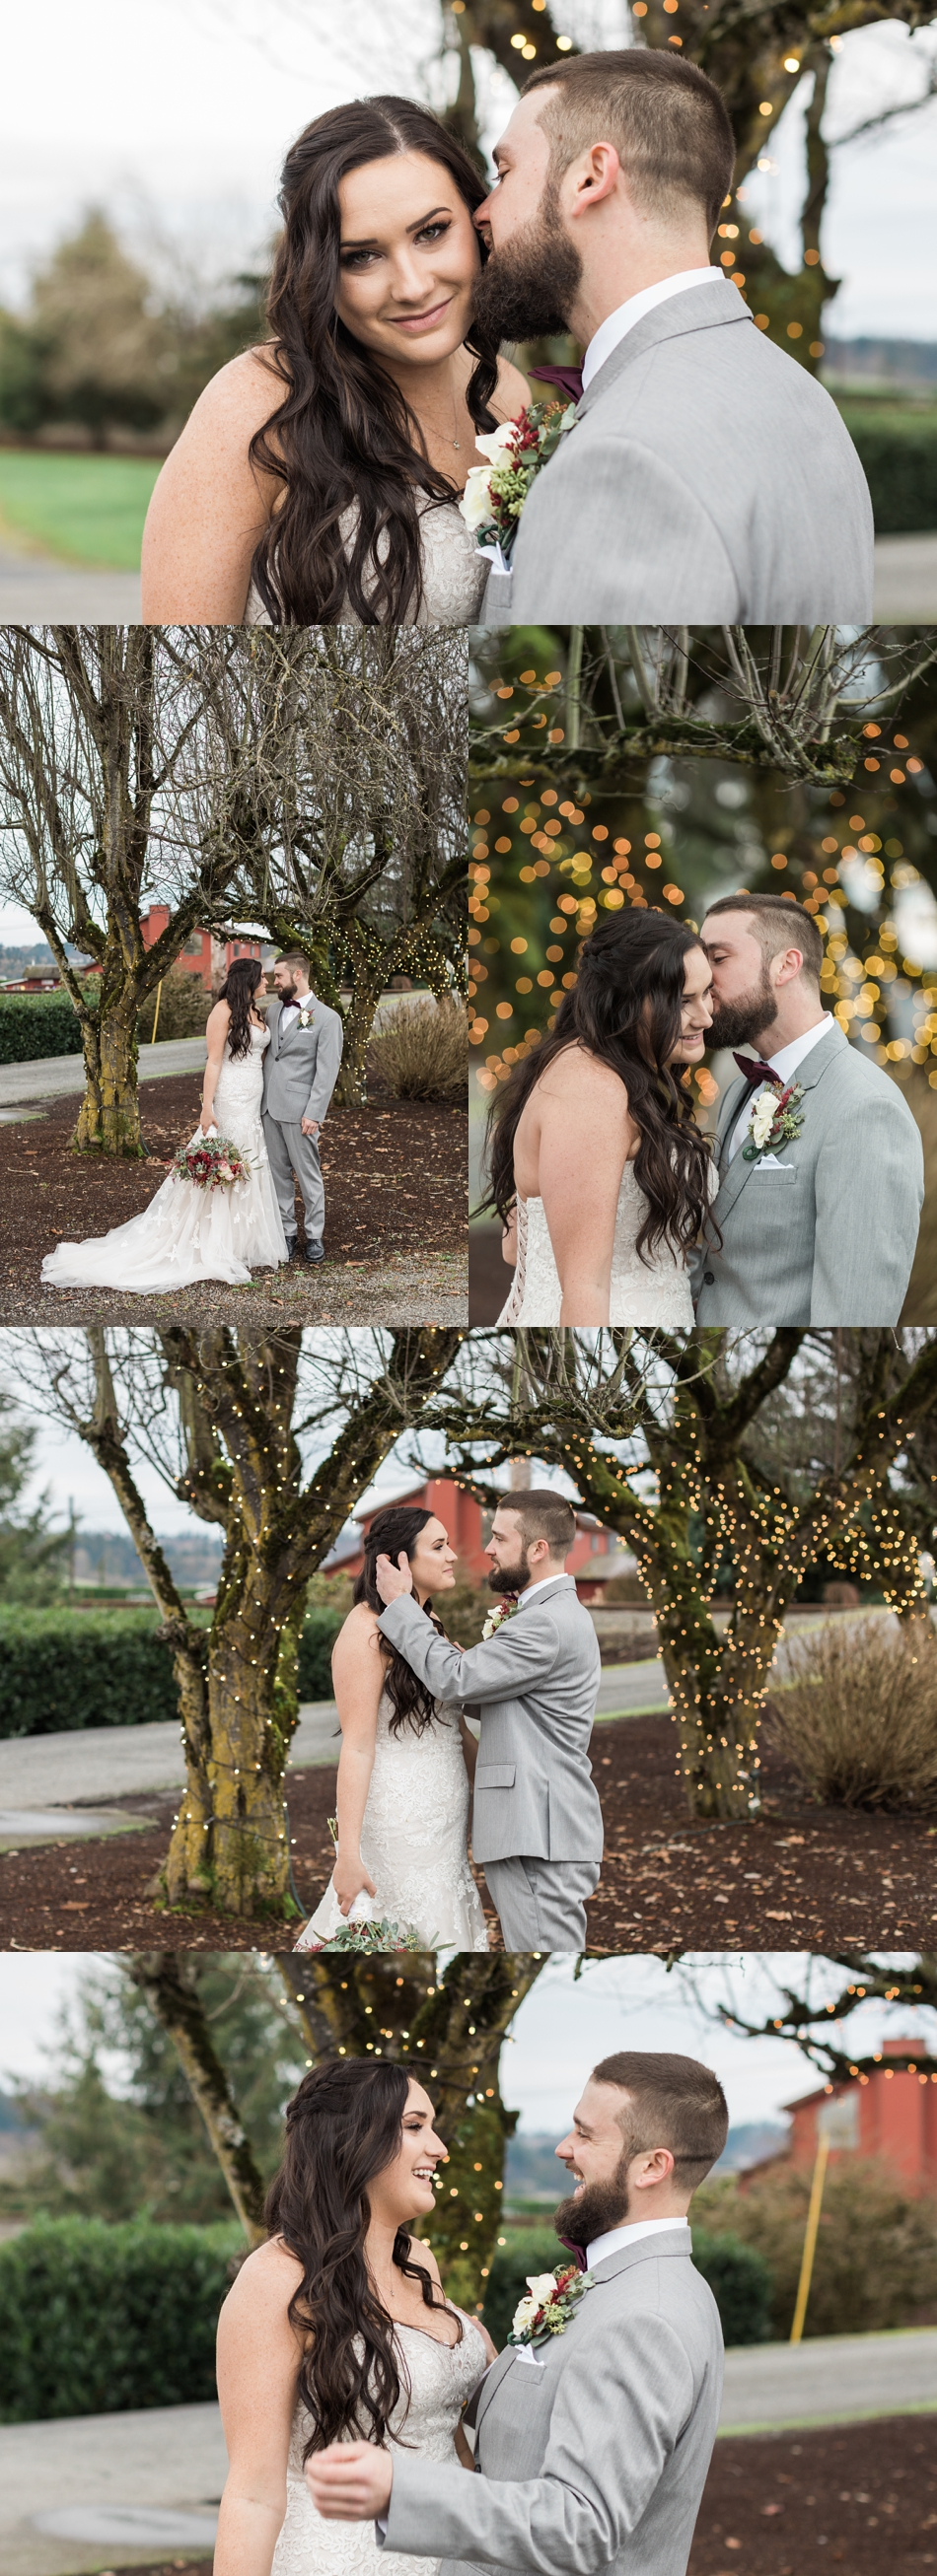 A bride and groom embrace and kiss before their winter wedding at Hidden Meadows in Snohomish, a wedding venue near Seattle, WA. | Joanna Monger Photography | Snohomish & Seattle Wedding Photographer